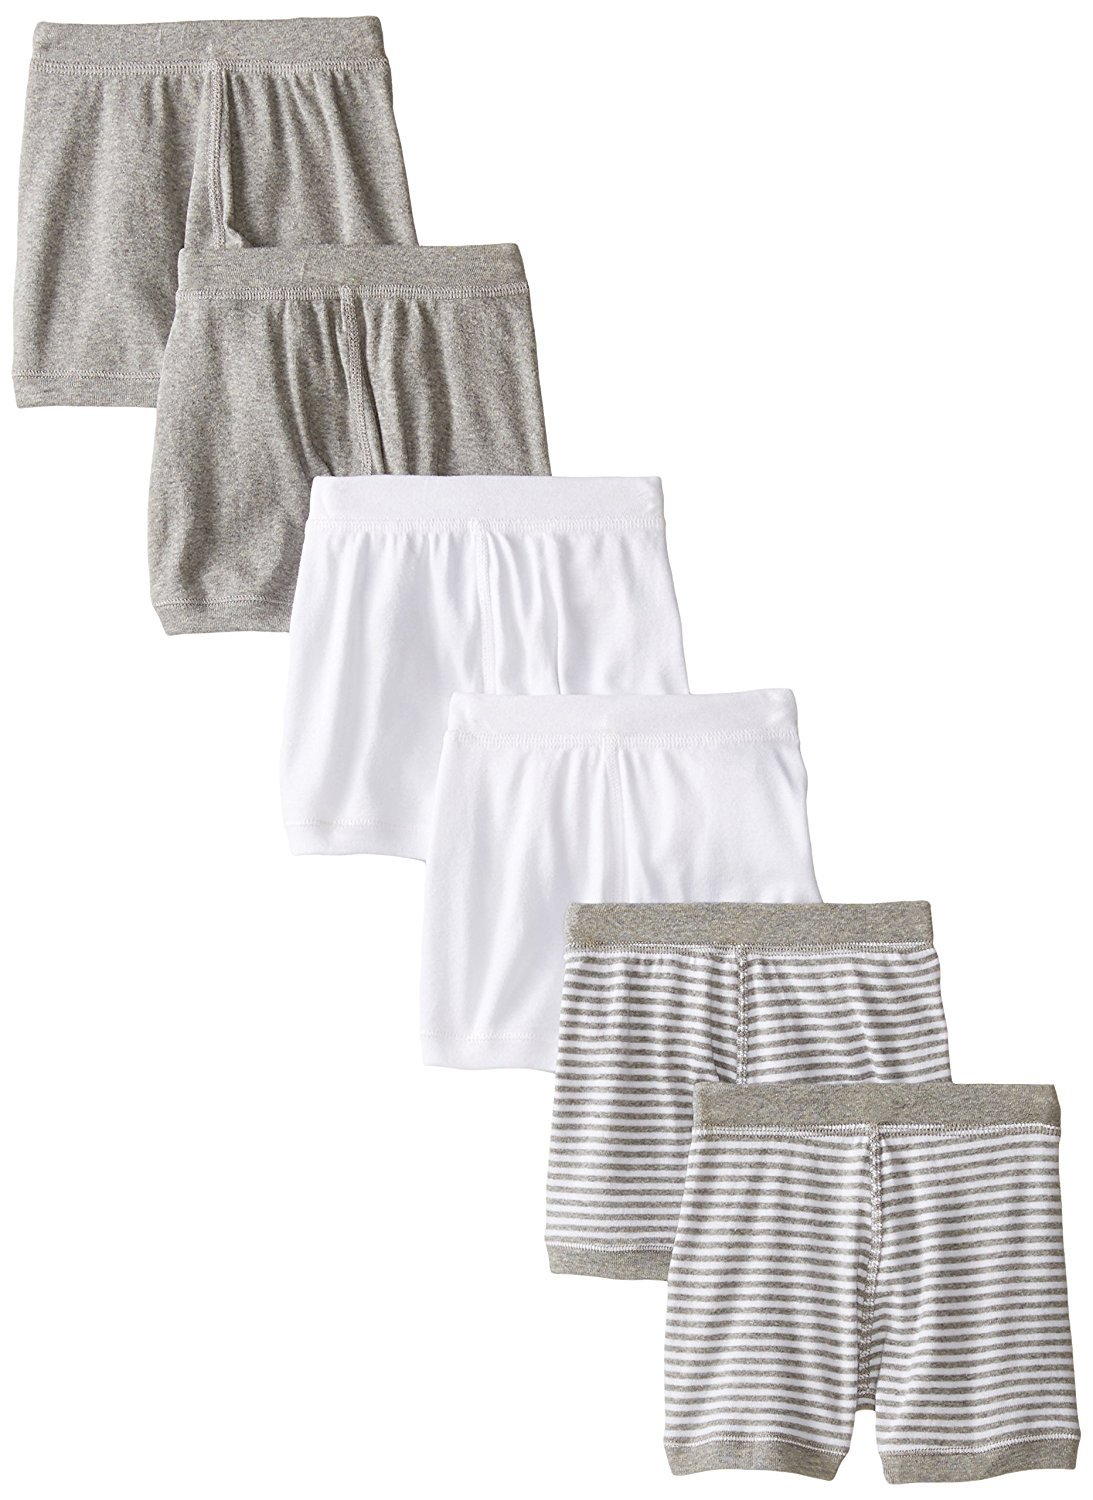 Burt's Bees Baby Set of 6 100% Organic Cotton Boxer Shorts, Cloud/Heather Grey/Stripe, 24 Months